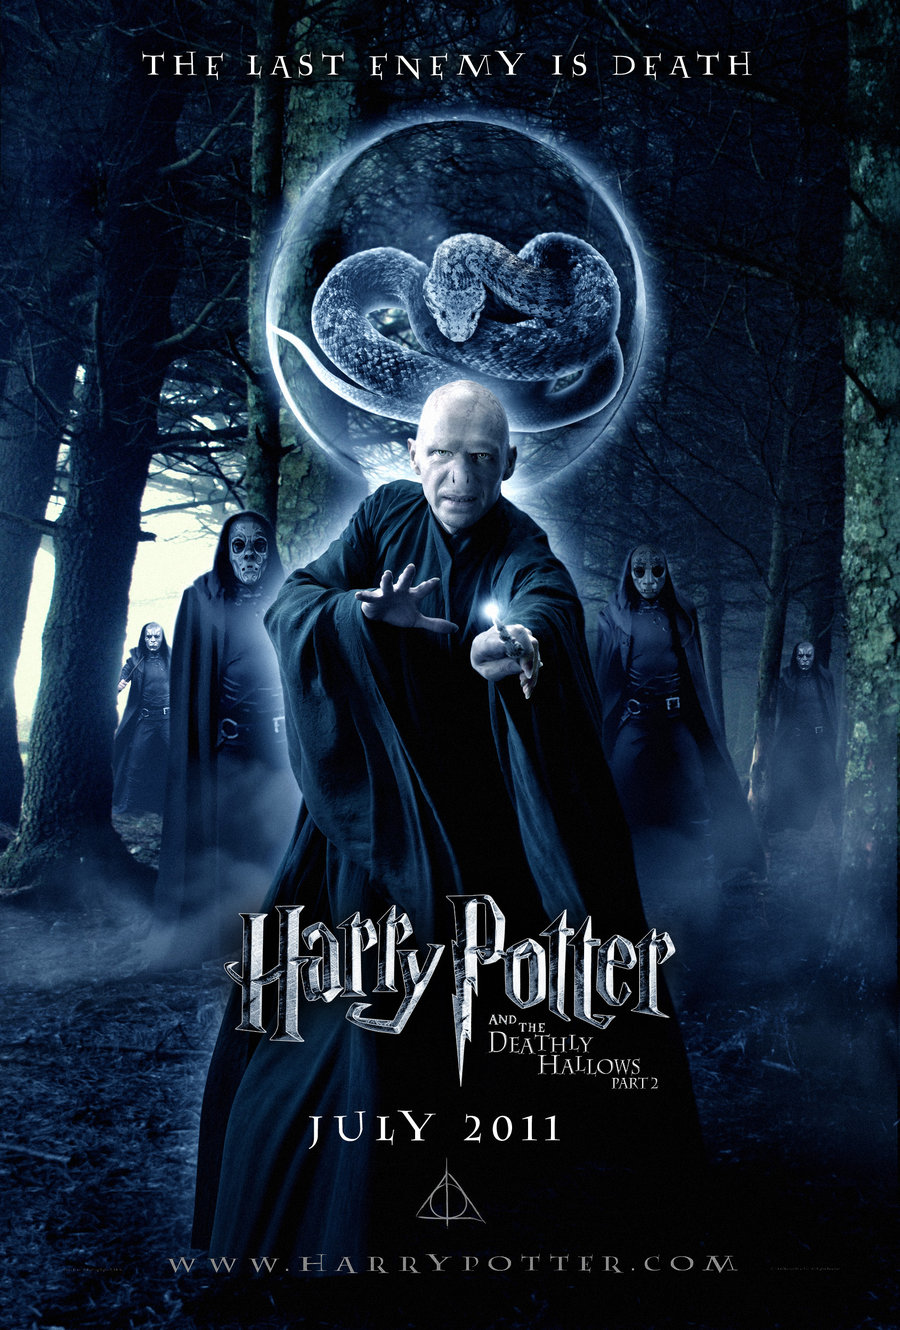 Harry potter and the deathly hallows part 2 2017 720p brrip xvid ac3 vision